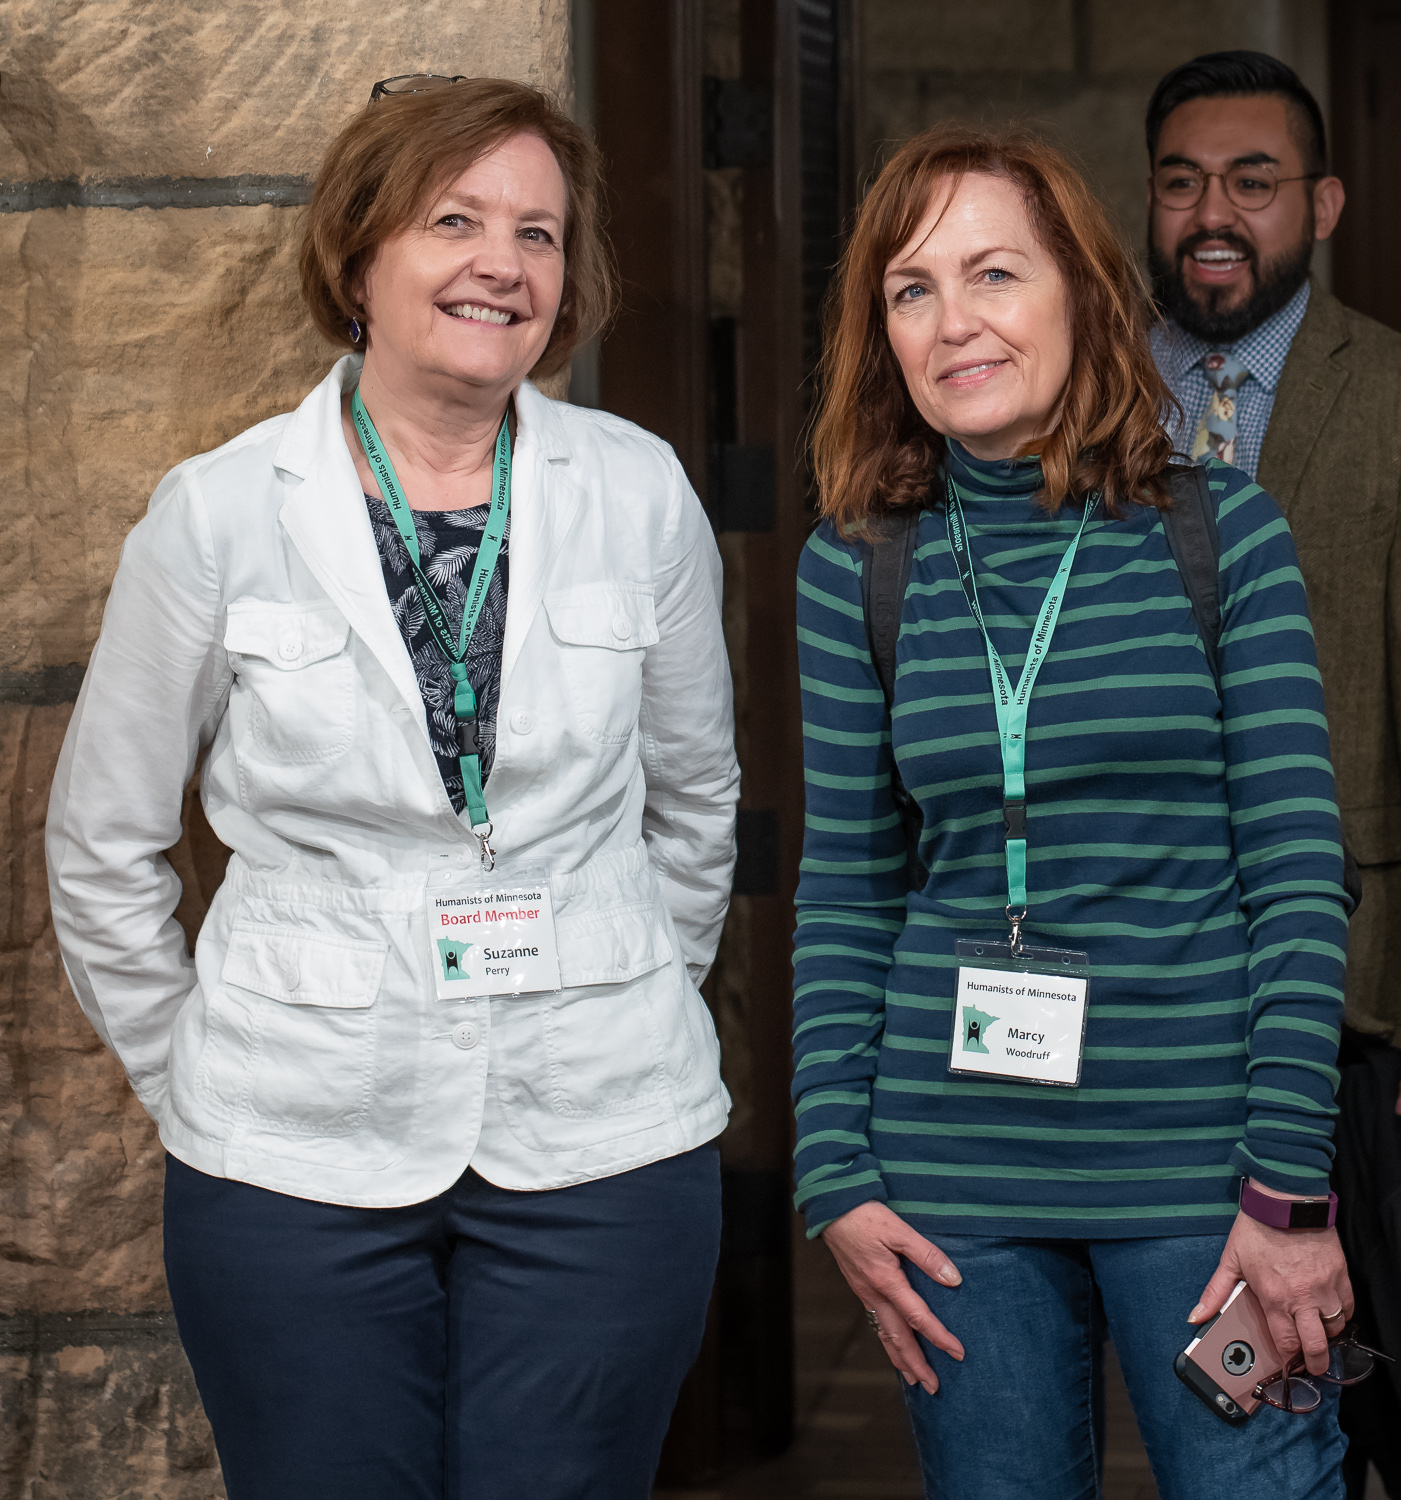 Suzanne Perry and Marcy Woodruff, HumanistsMN